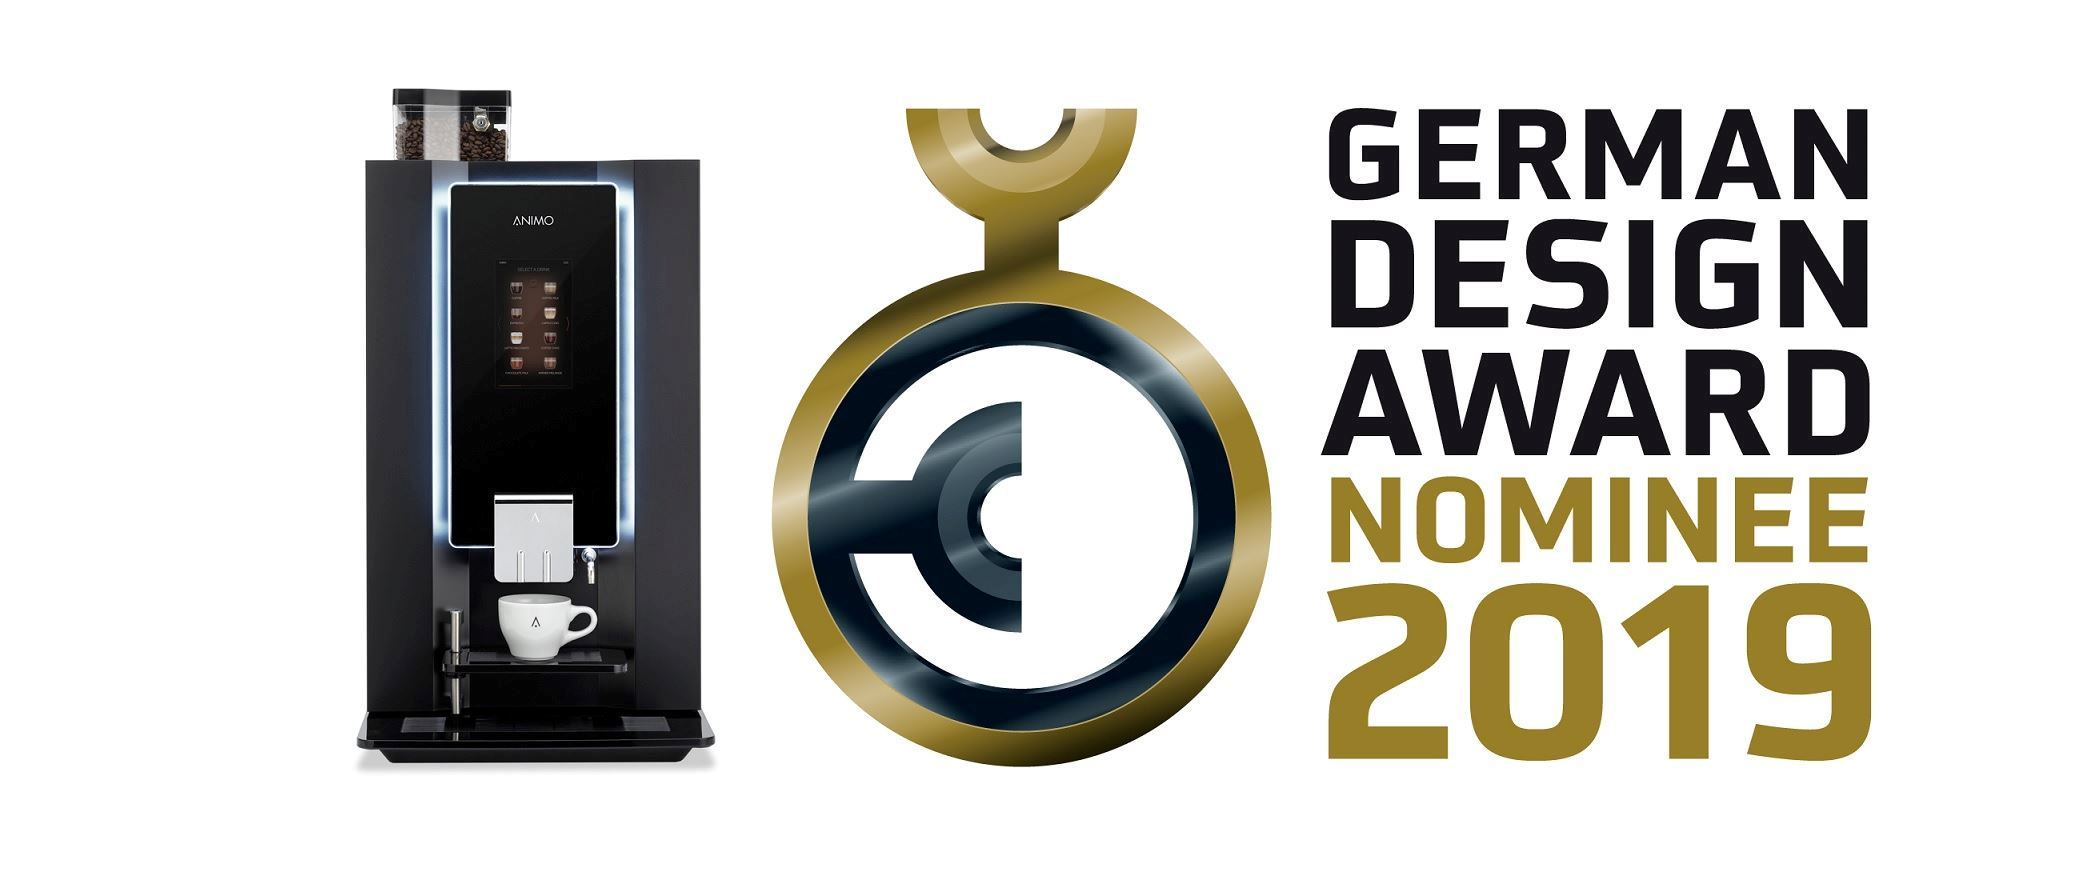 OptiBean Touch genomineerd voor German Design Award